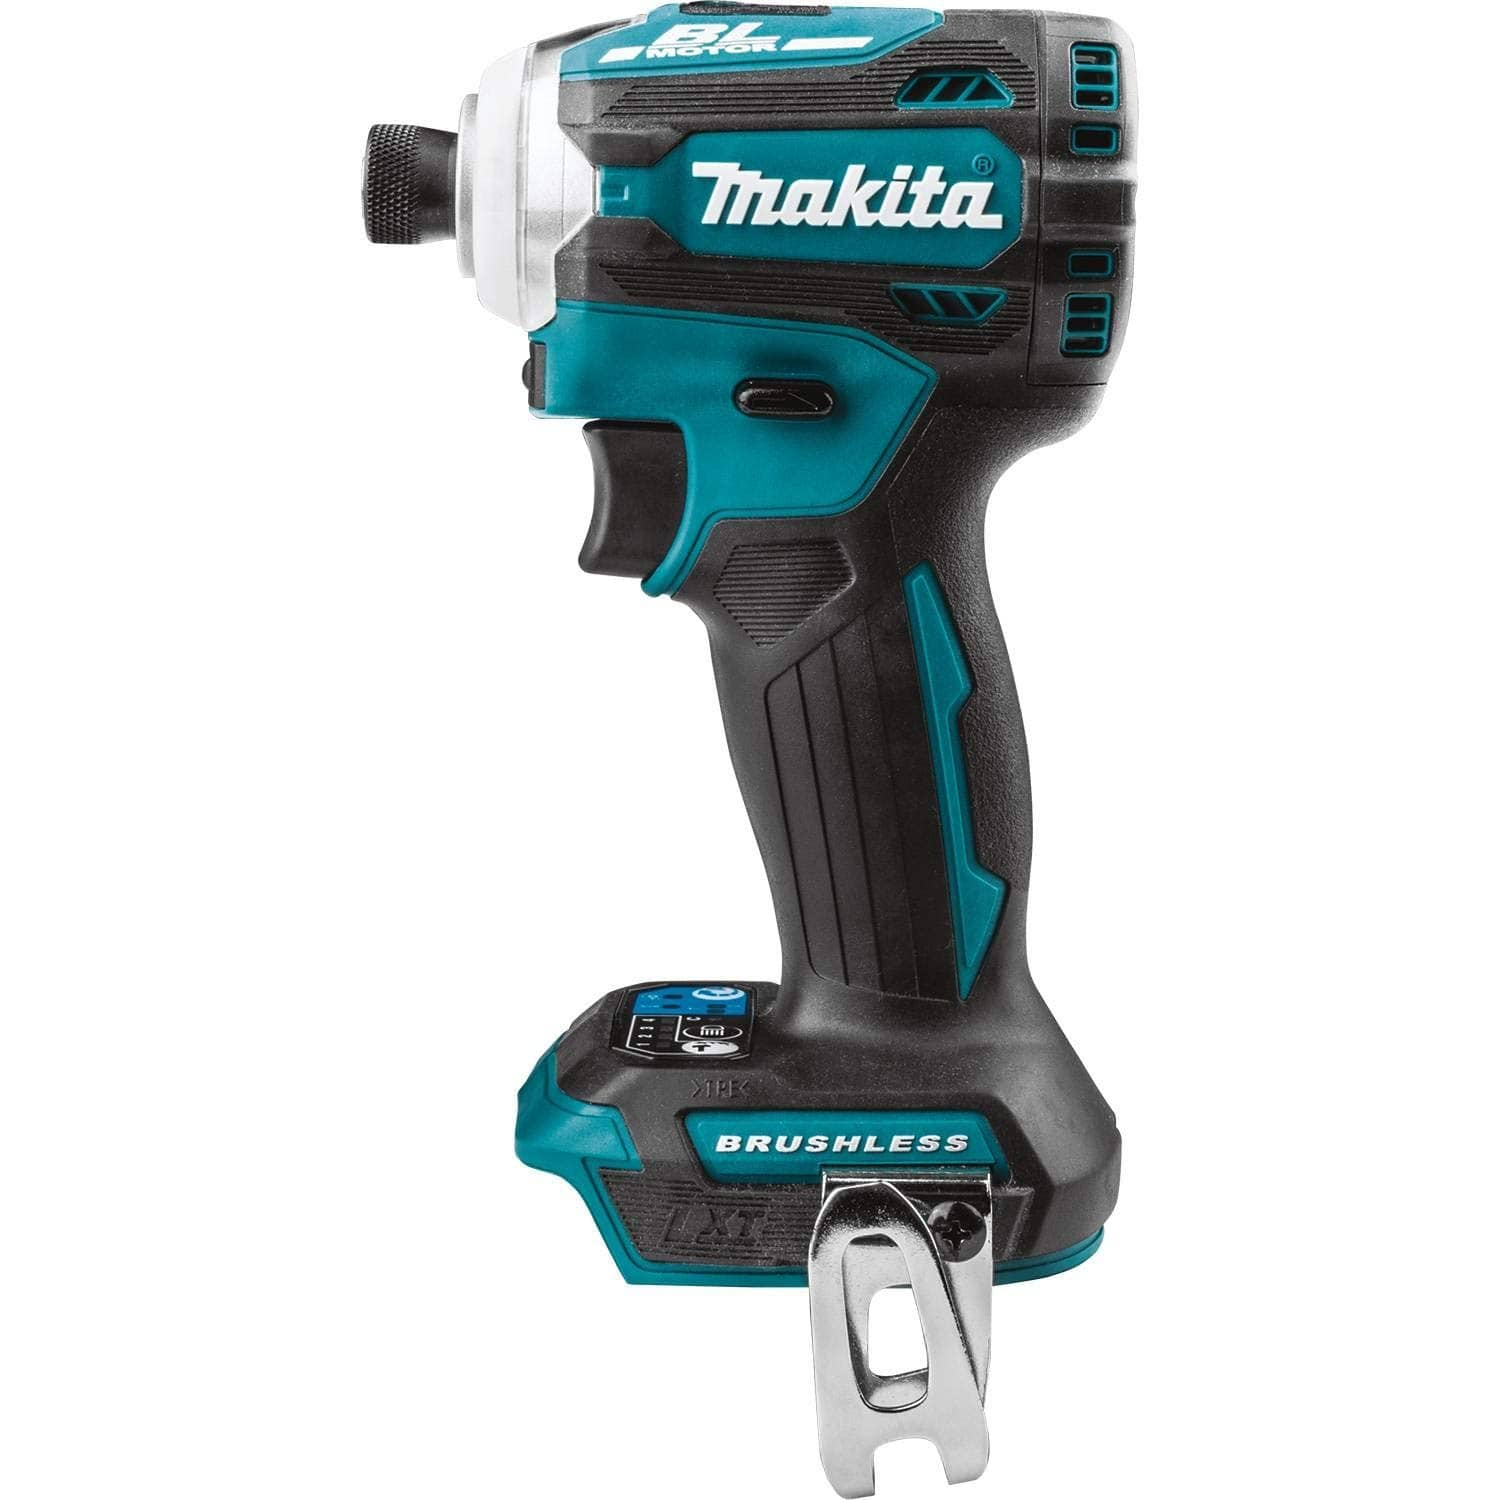 Makita XDT16Z 18V LXT Lithium-Ion Brushless Cordless Quick-Shift Mode 4-Speed Impact Driver, Tool Only [Bare Tool] $164.79